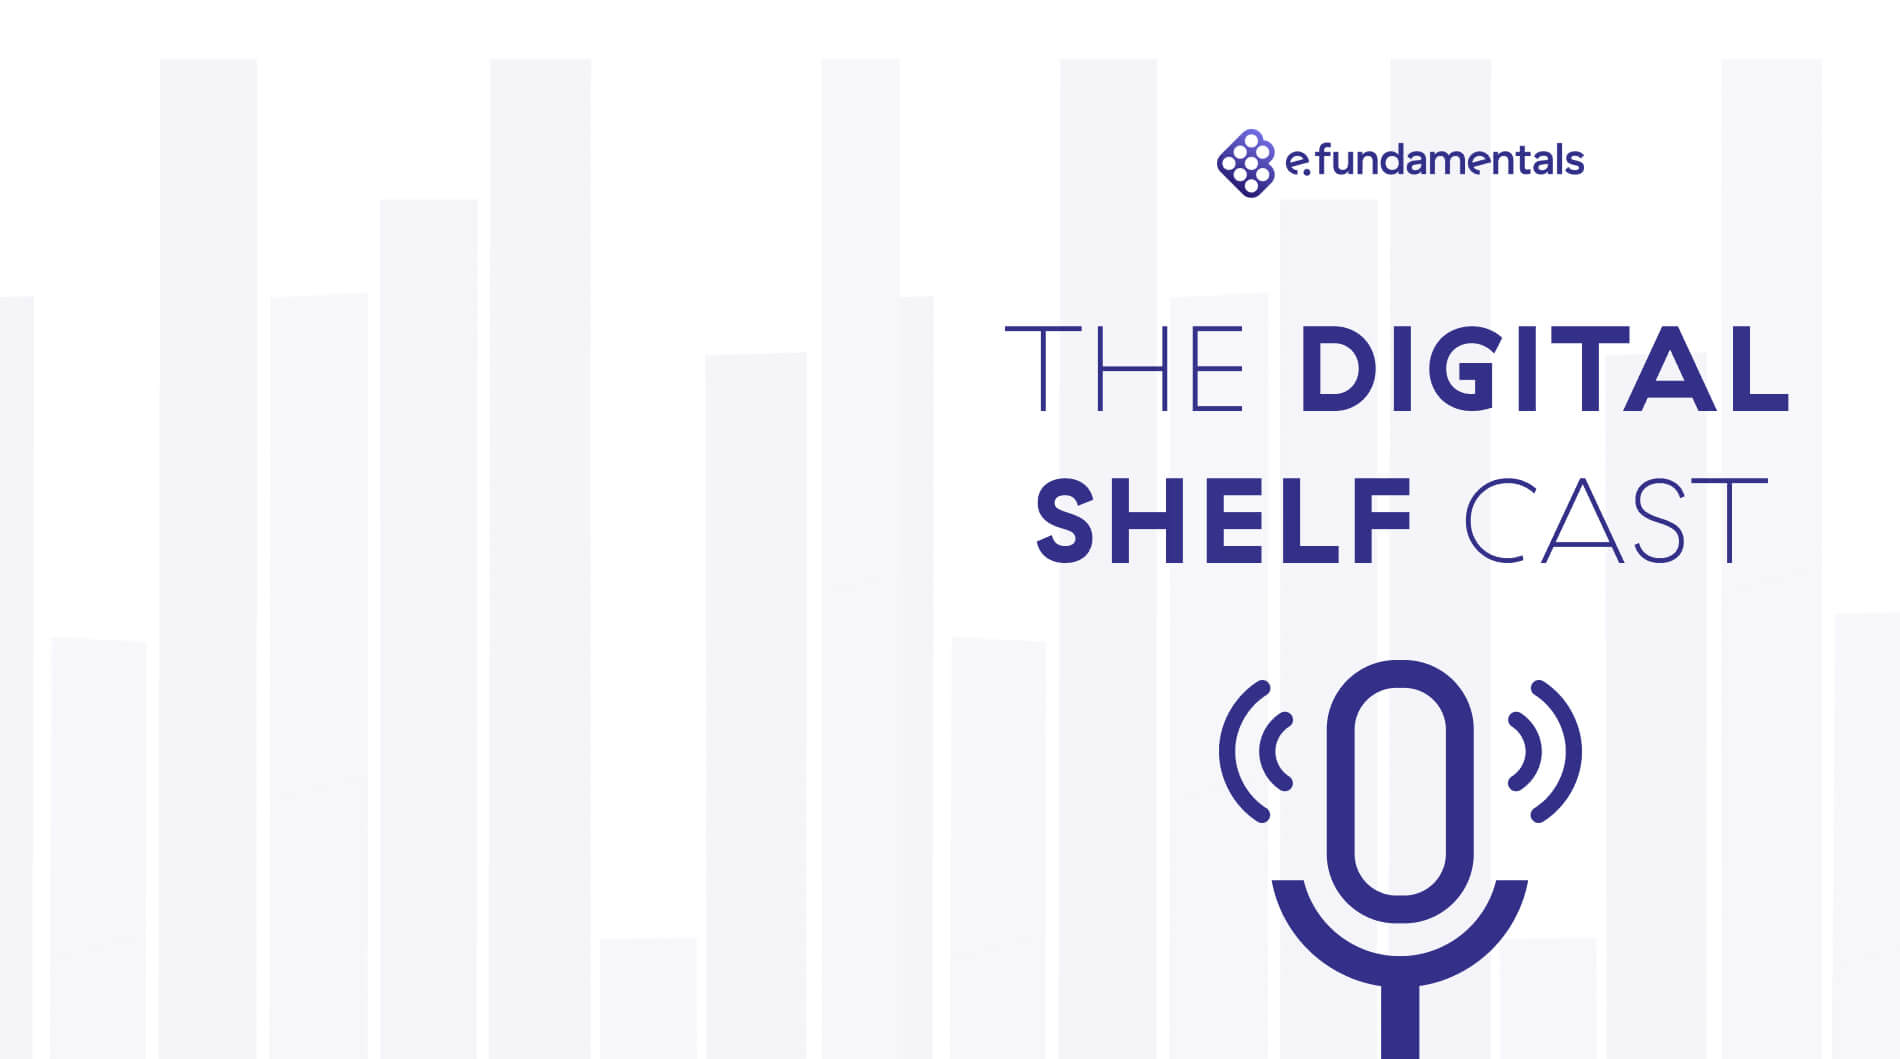 The Digital Shelf Cast Podcast. Get more from your eRetail Media spend #2